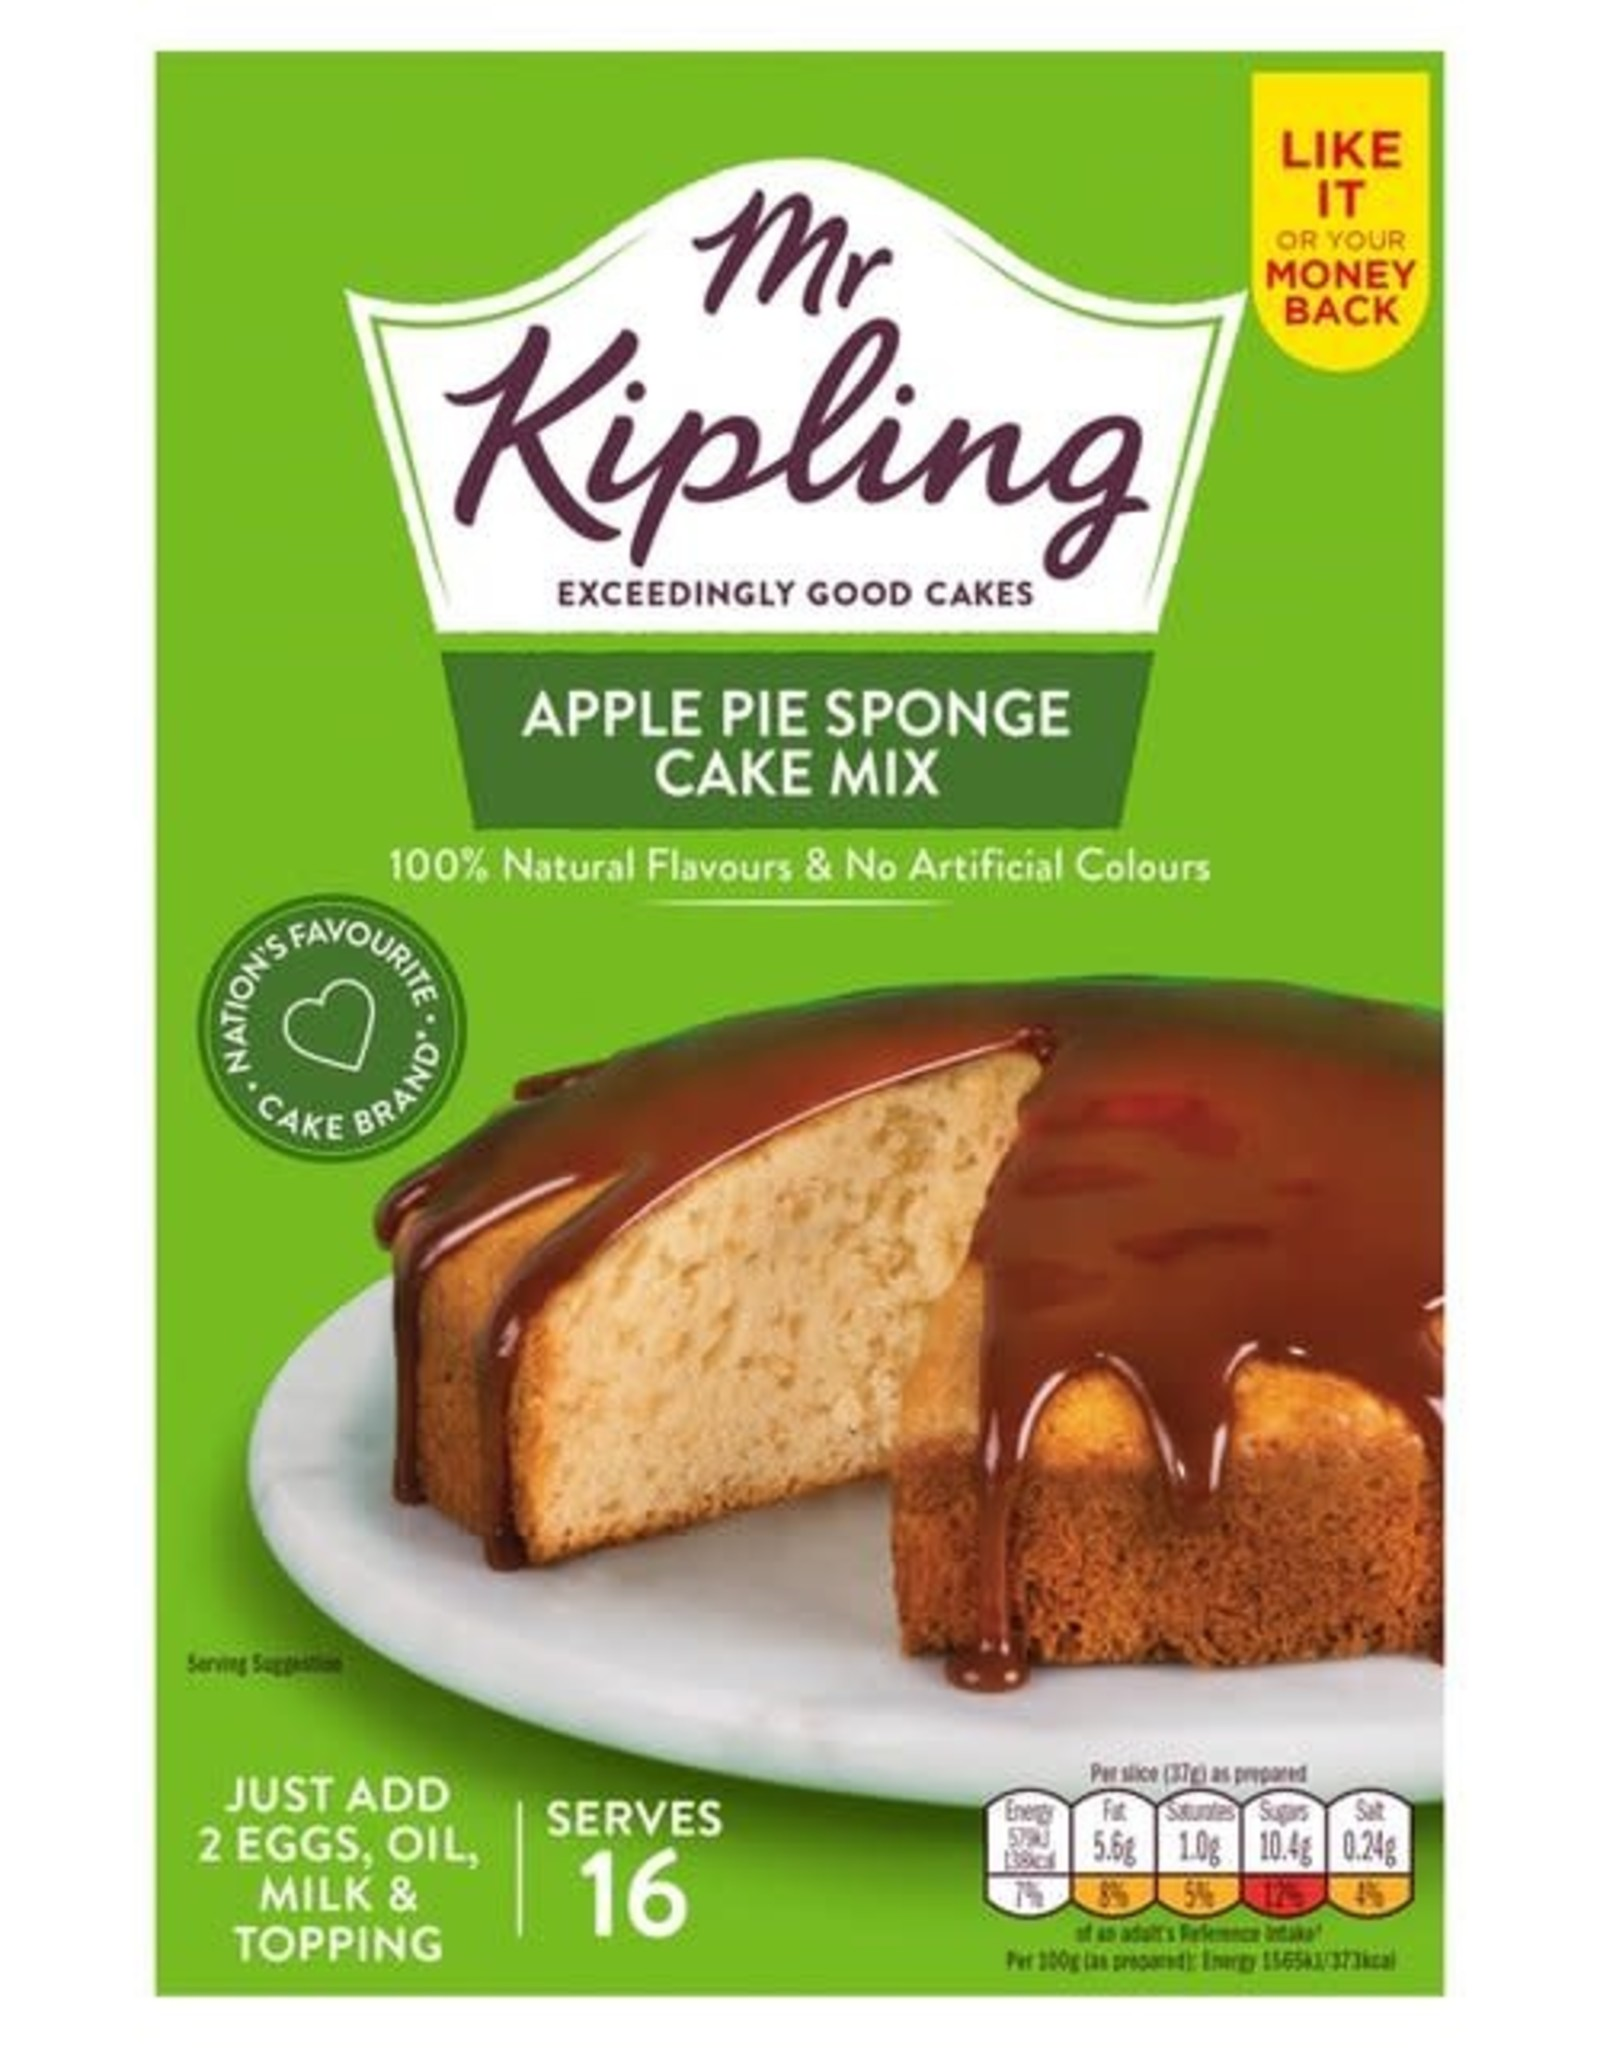 Mr Kipling Mr Kipling Apple Pie Sponge Cake Mix